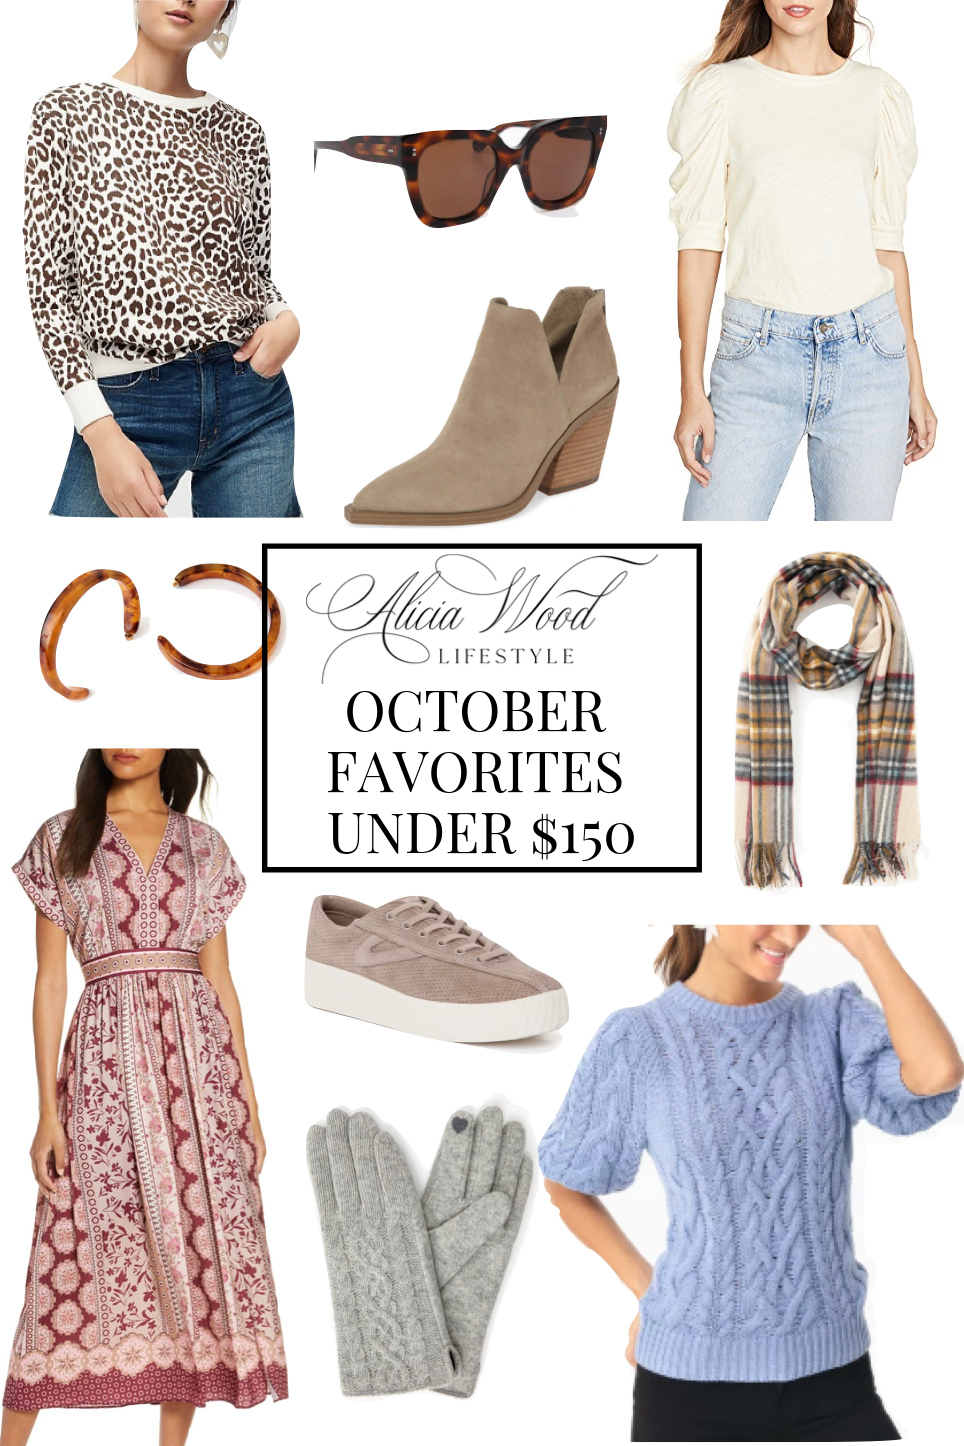 October Favorites Under $150